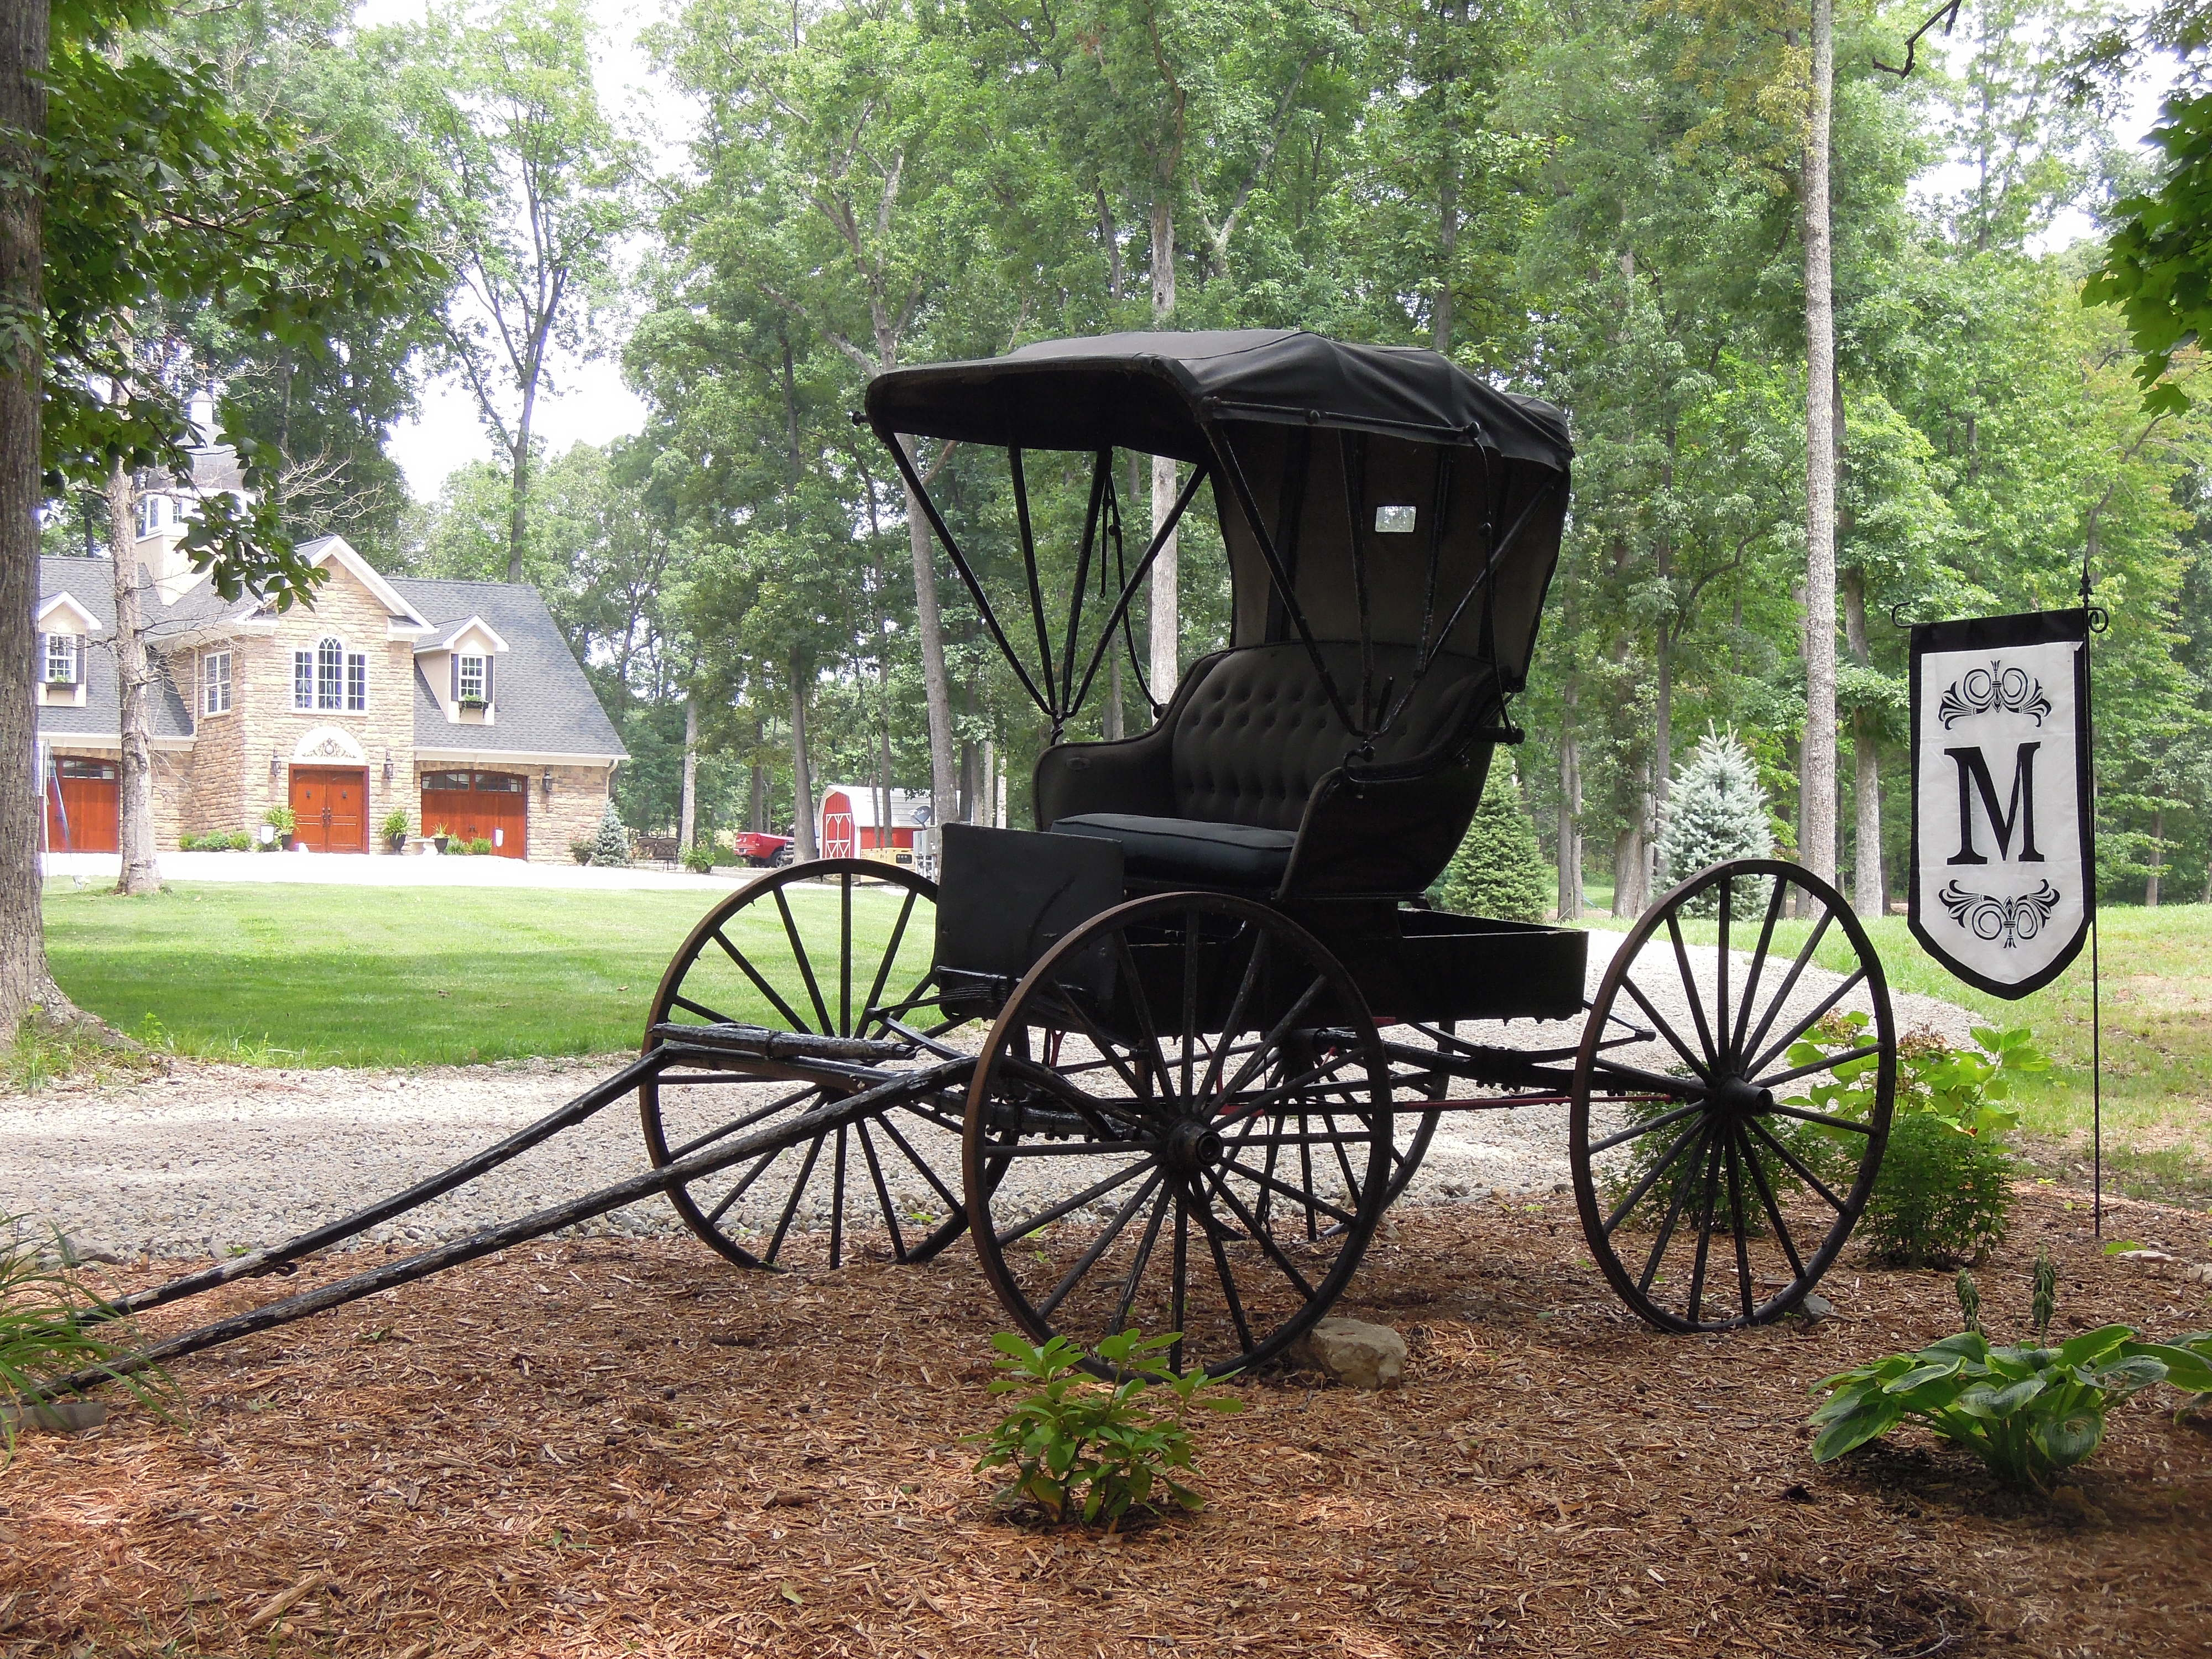 The carriage by the front entry.